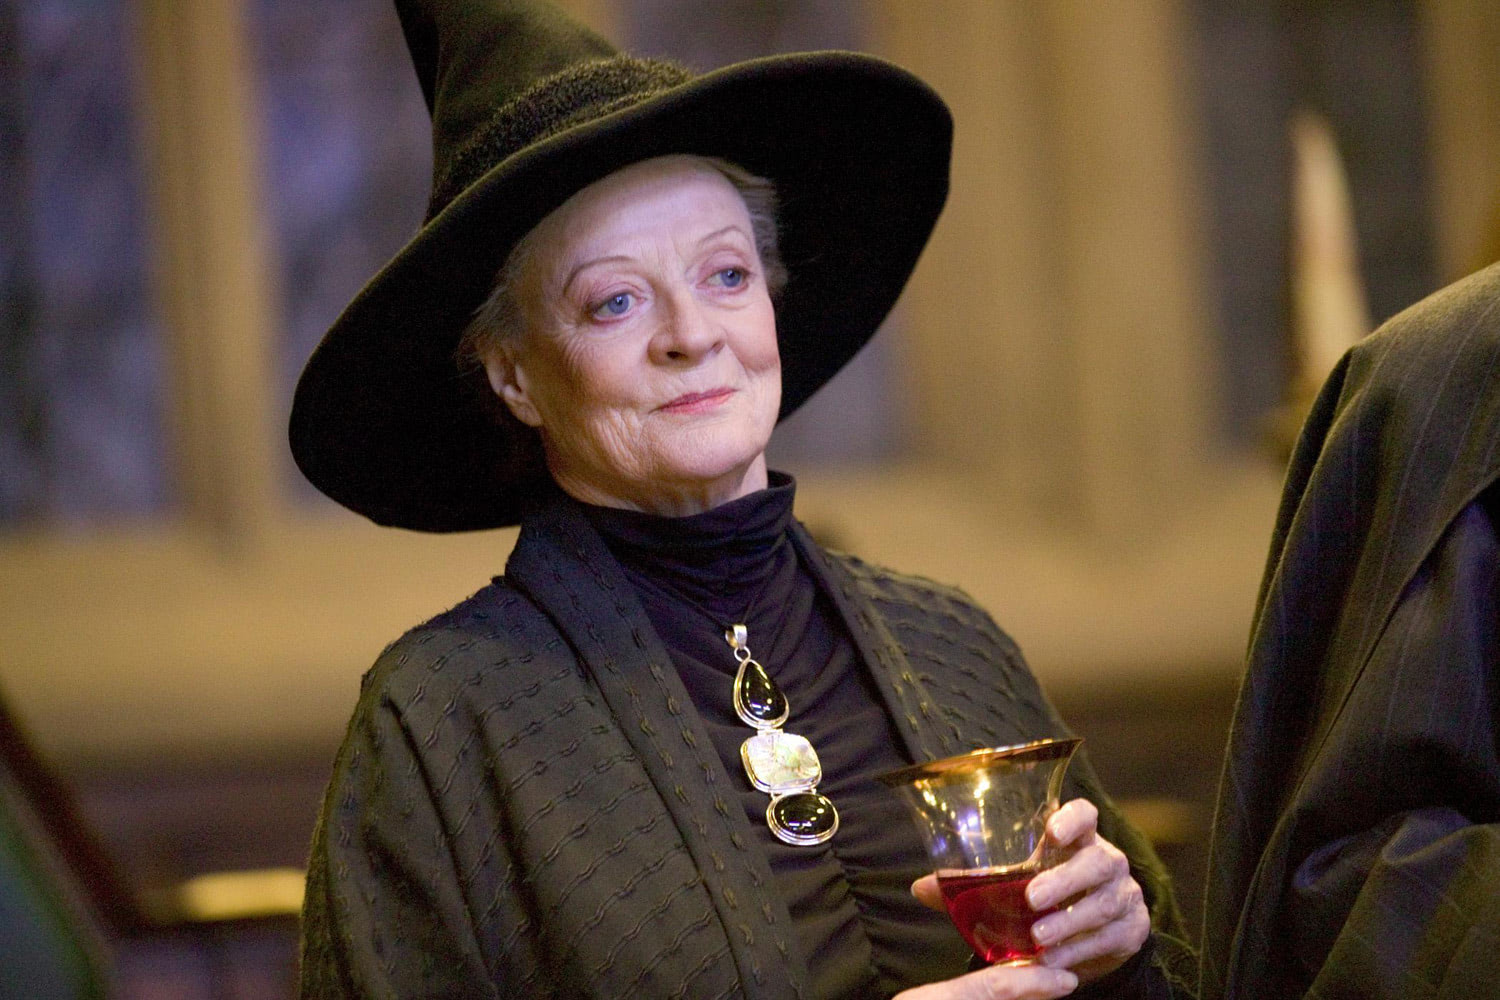 Professor McGonagall enjoys a drink